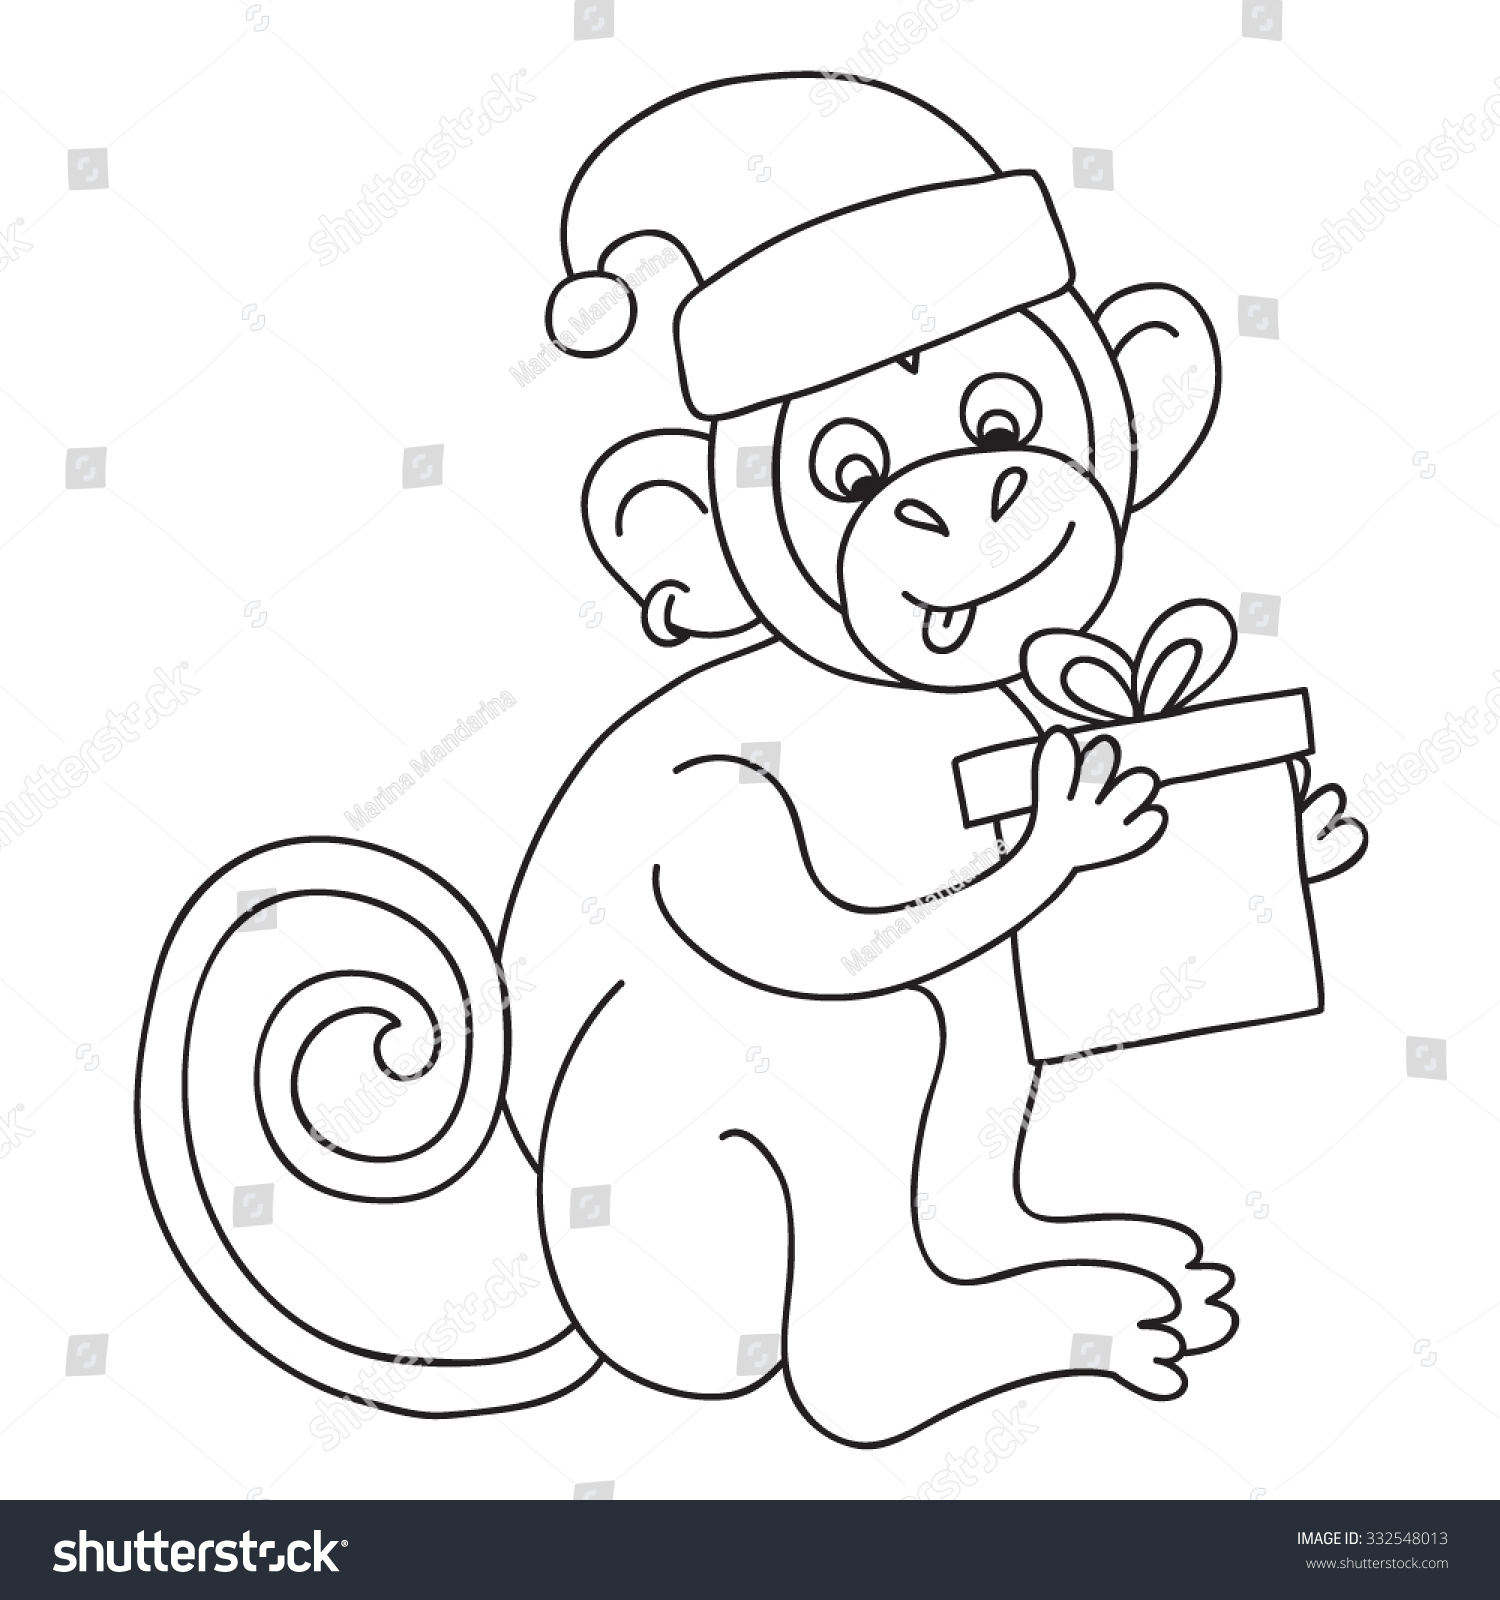 Vector Funny Monkey Illustration Coloring Page Of Happy